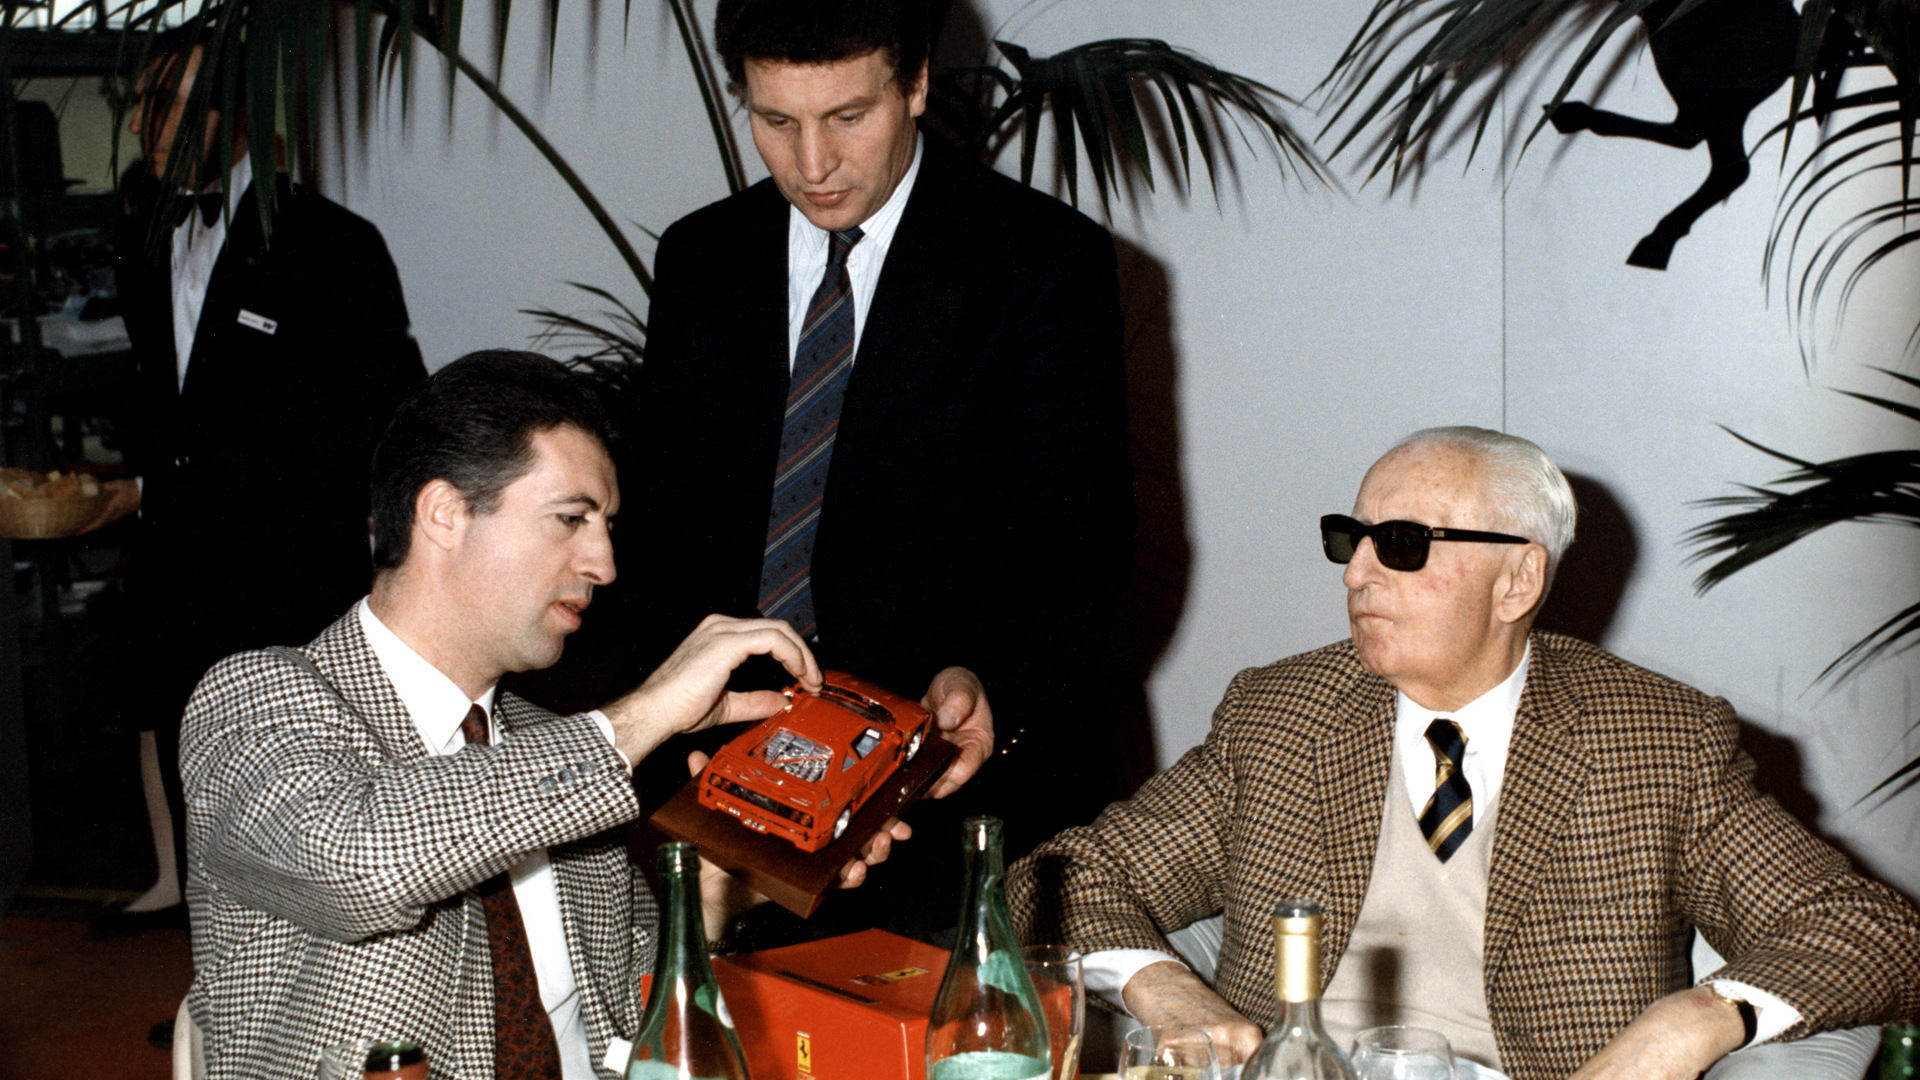 Piero and Enzo Ferrari at the Ferrari F40 debut - July 21, 1987